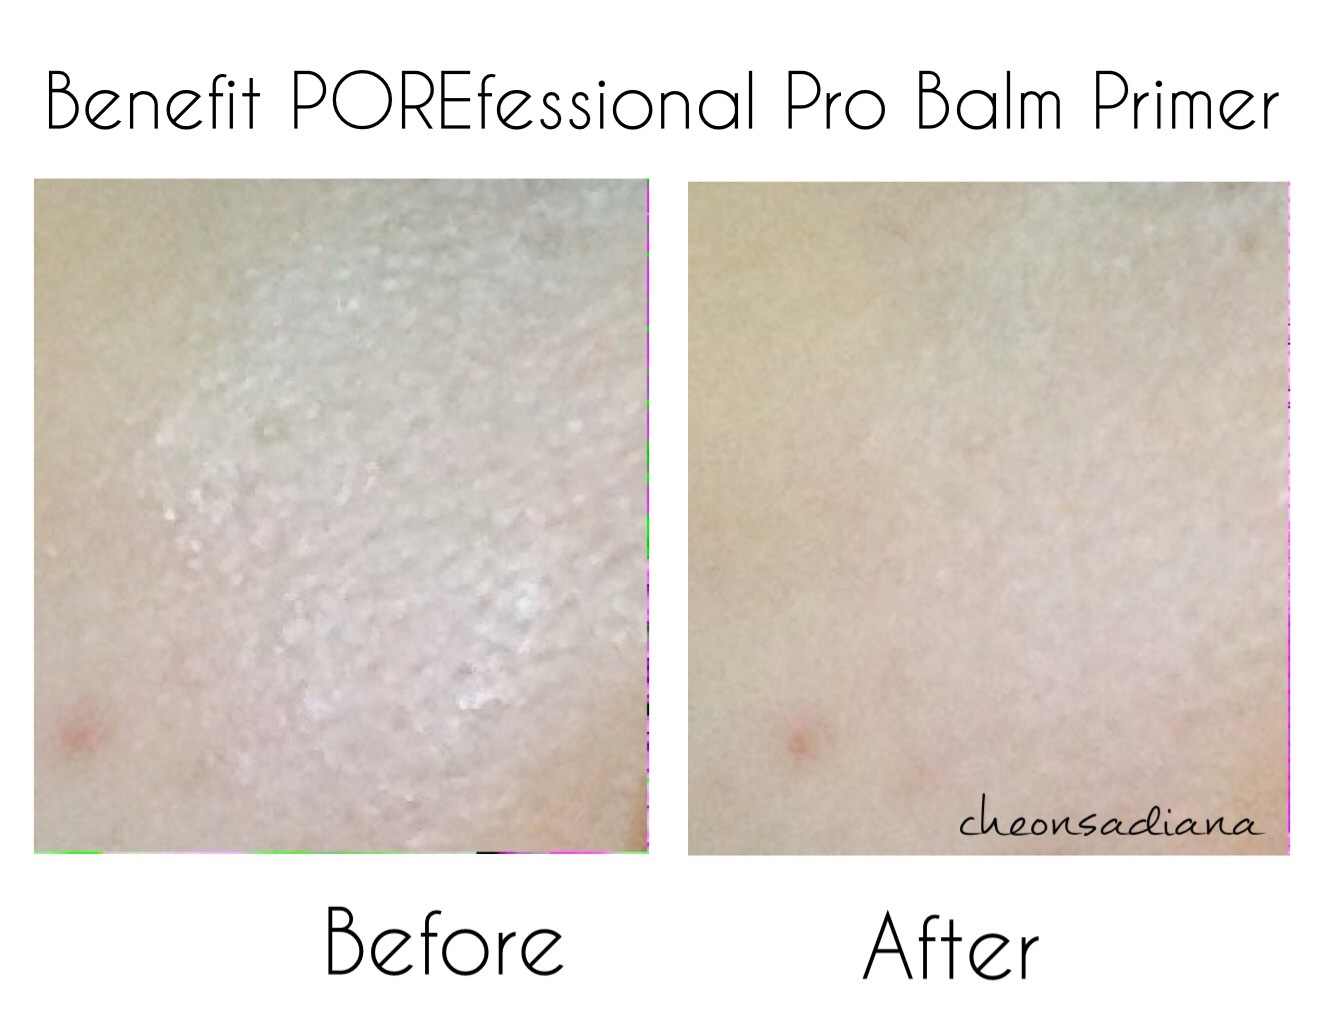 Review Before After Benefit Porefessional Pro Balm Primer Image